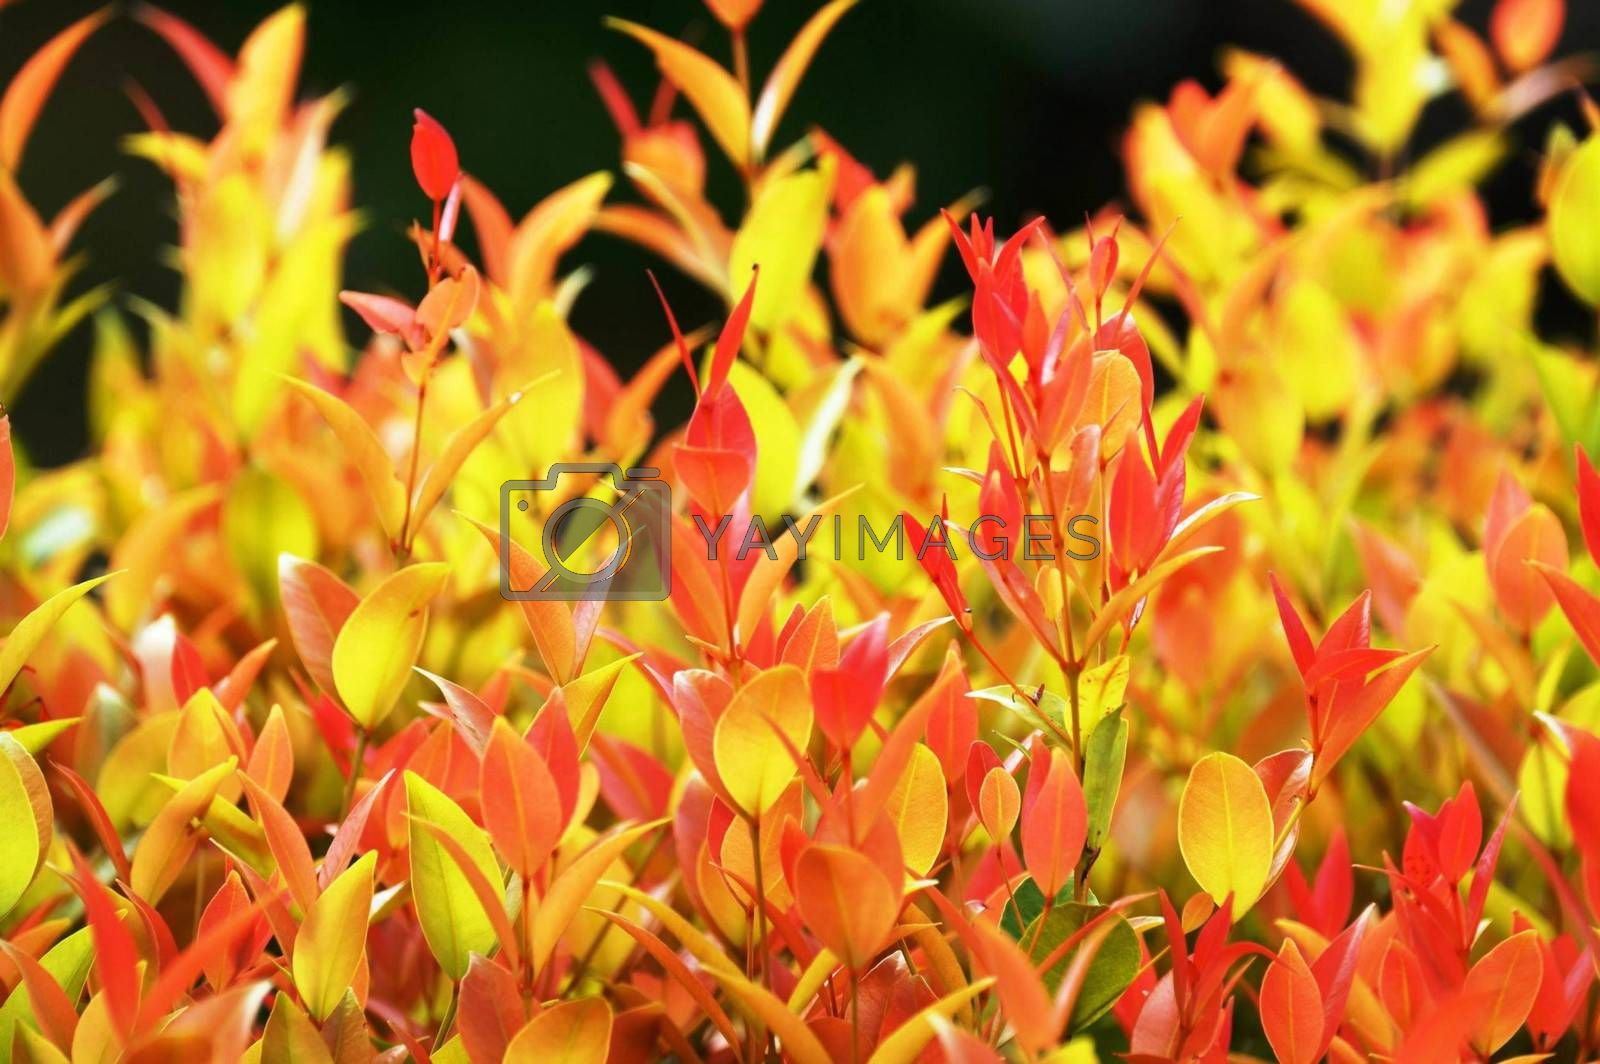 Royalty free image of fire on new branches by nattapatt